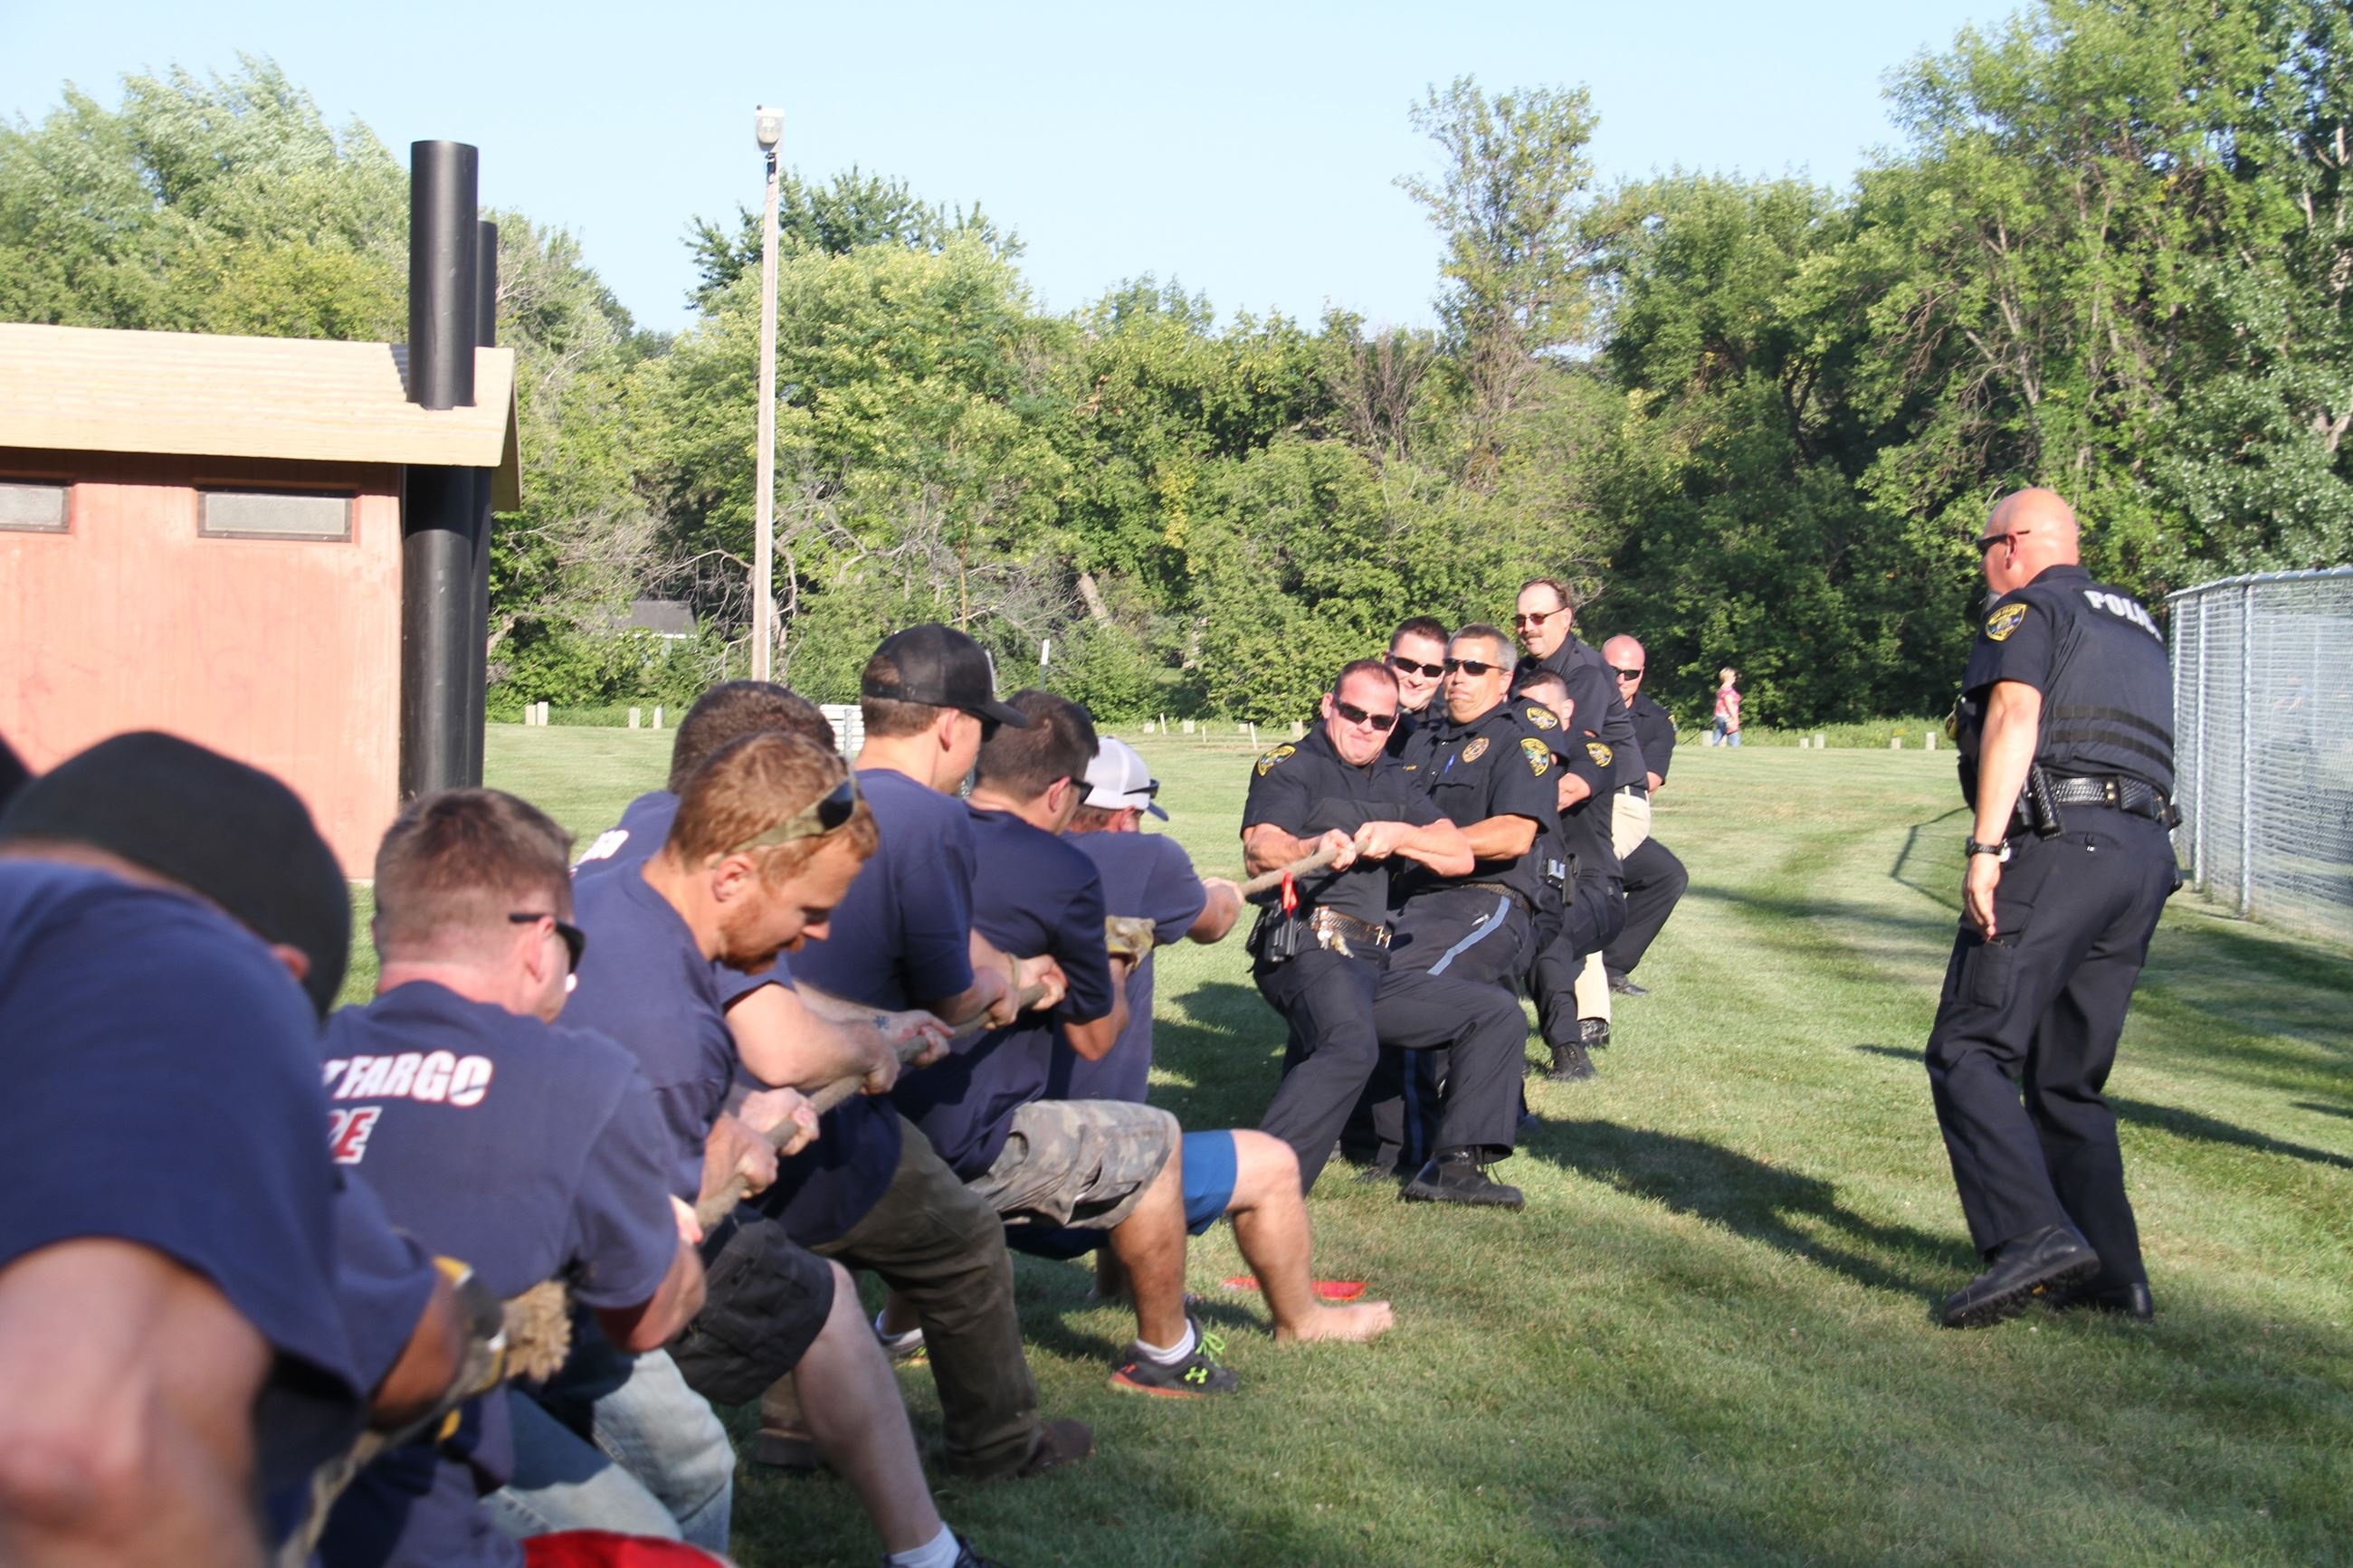 Lt. Anderson leads the police department in tug of war against the fire department